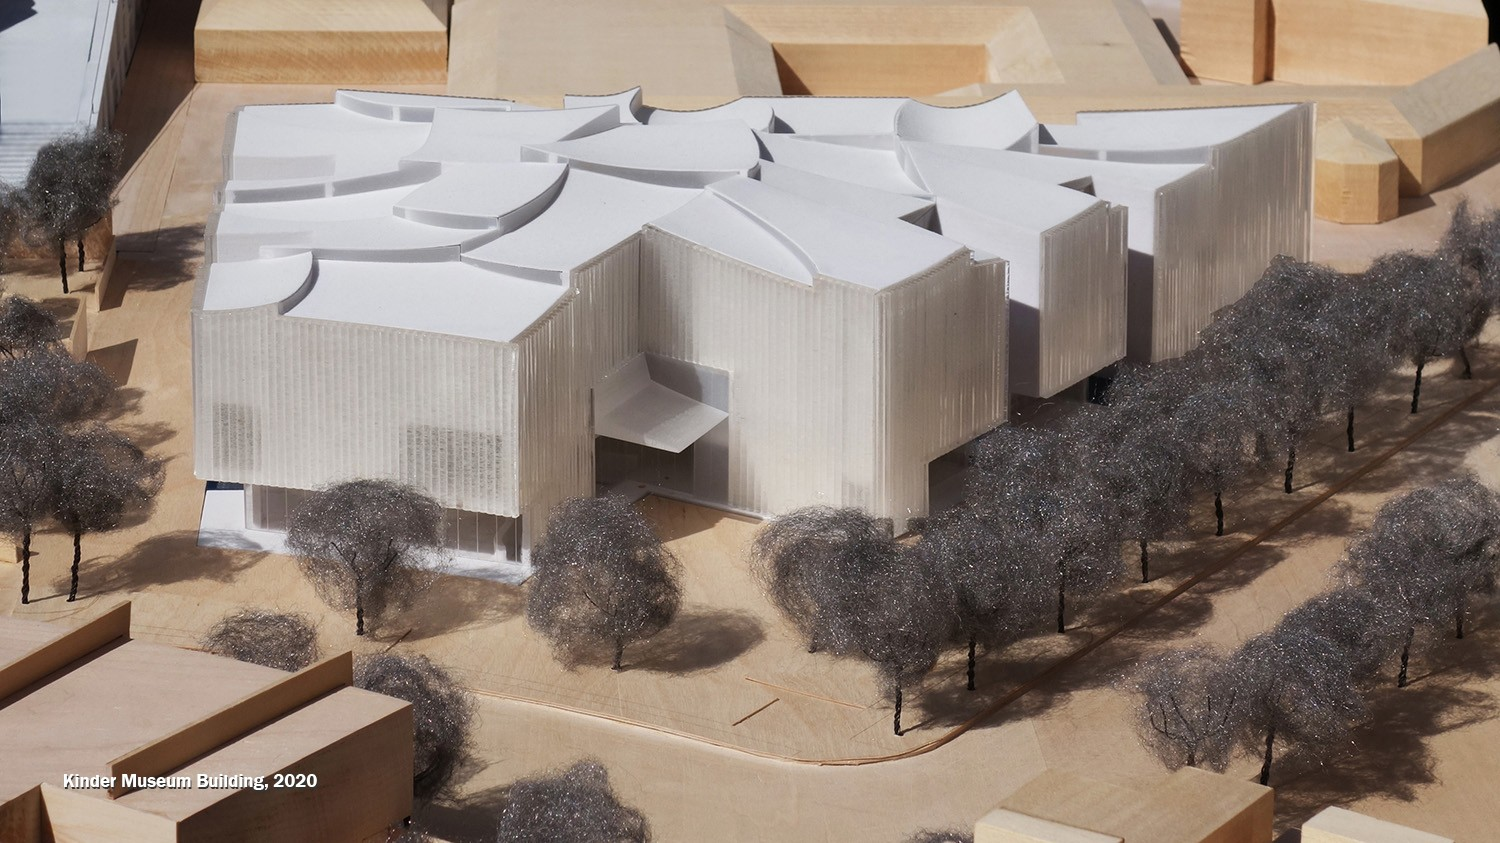 https://s3.us-east-2.amazonaws.com/steven-holl/uploads/projects/project-images/StevenHollArchitects_MFAH_SHA_21_DSC05143-final_WH.jpg